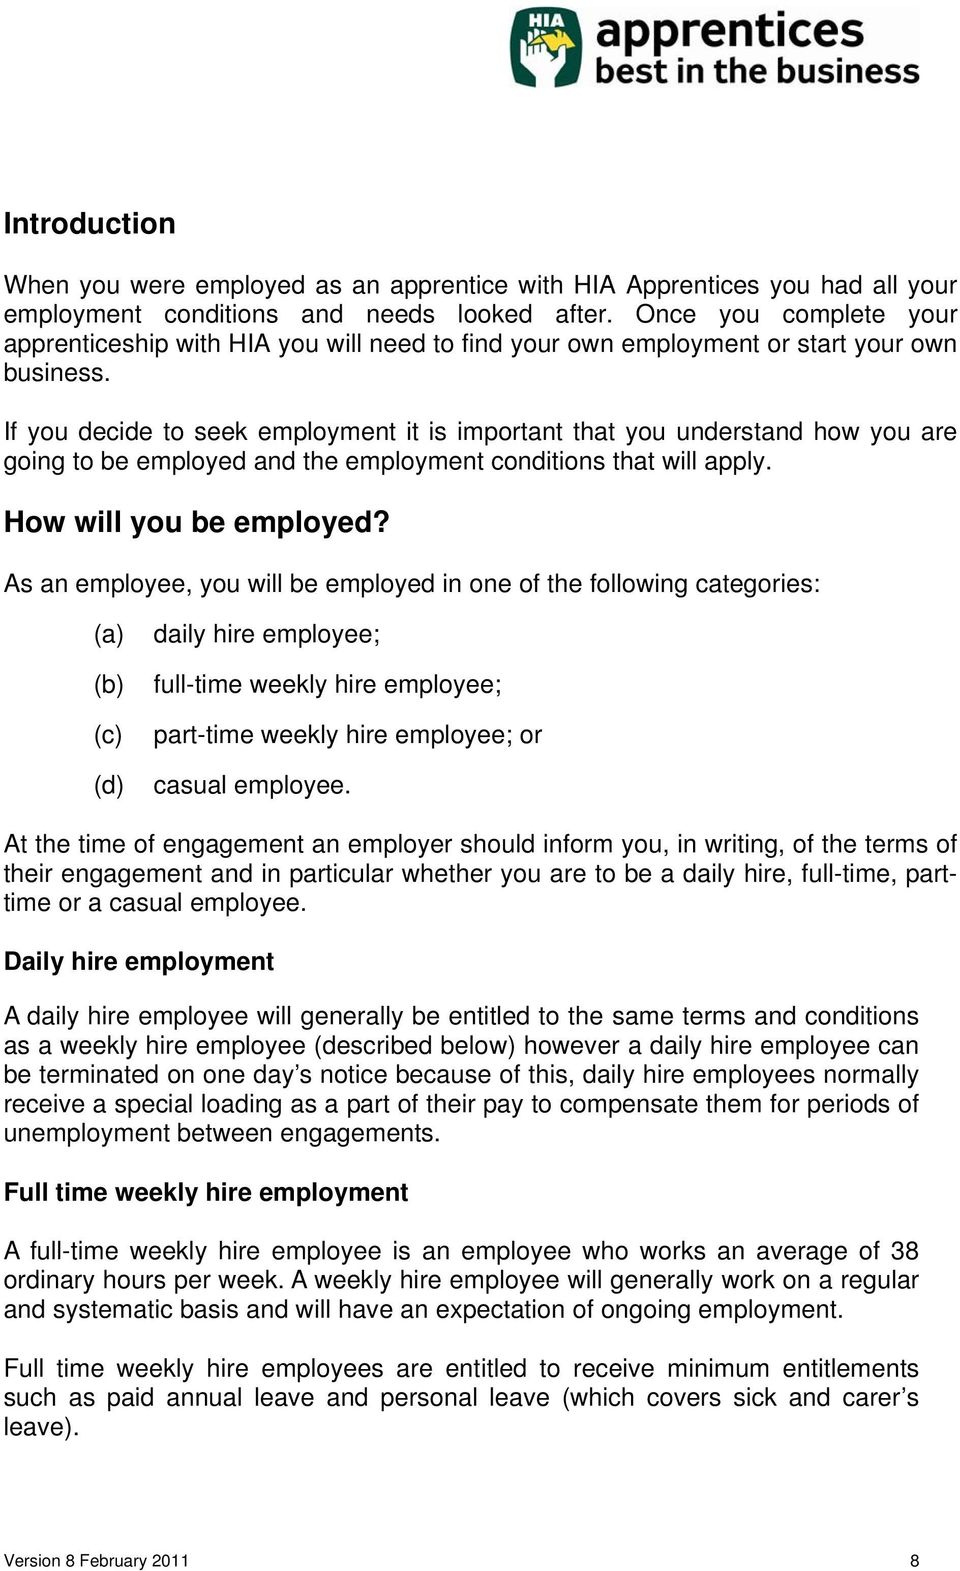 If you decide to seek employment it is important that you understand how you are going to be employed and the employment conditions that will apply. How will you be employed?